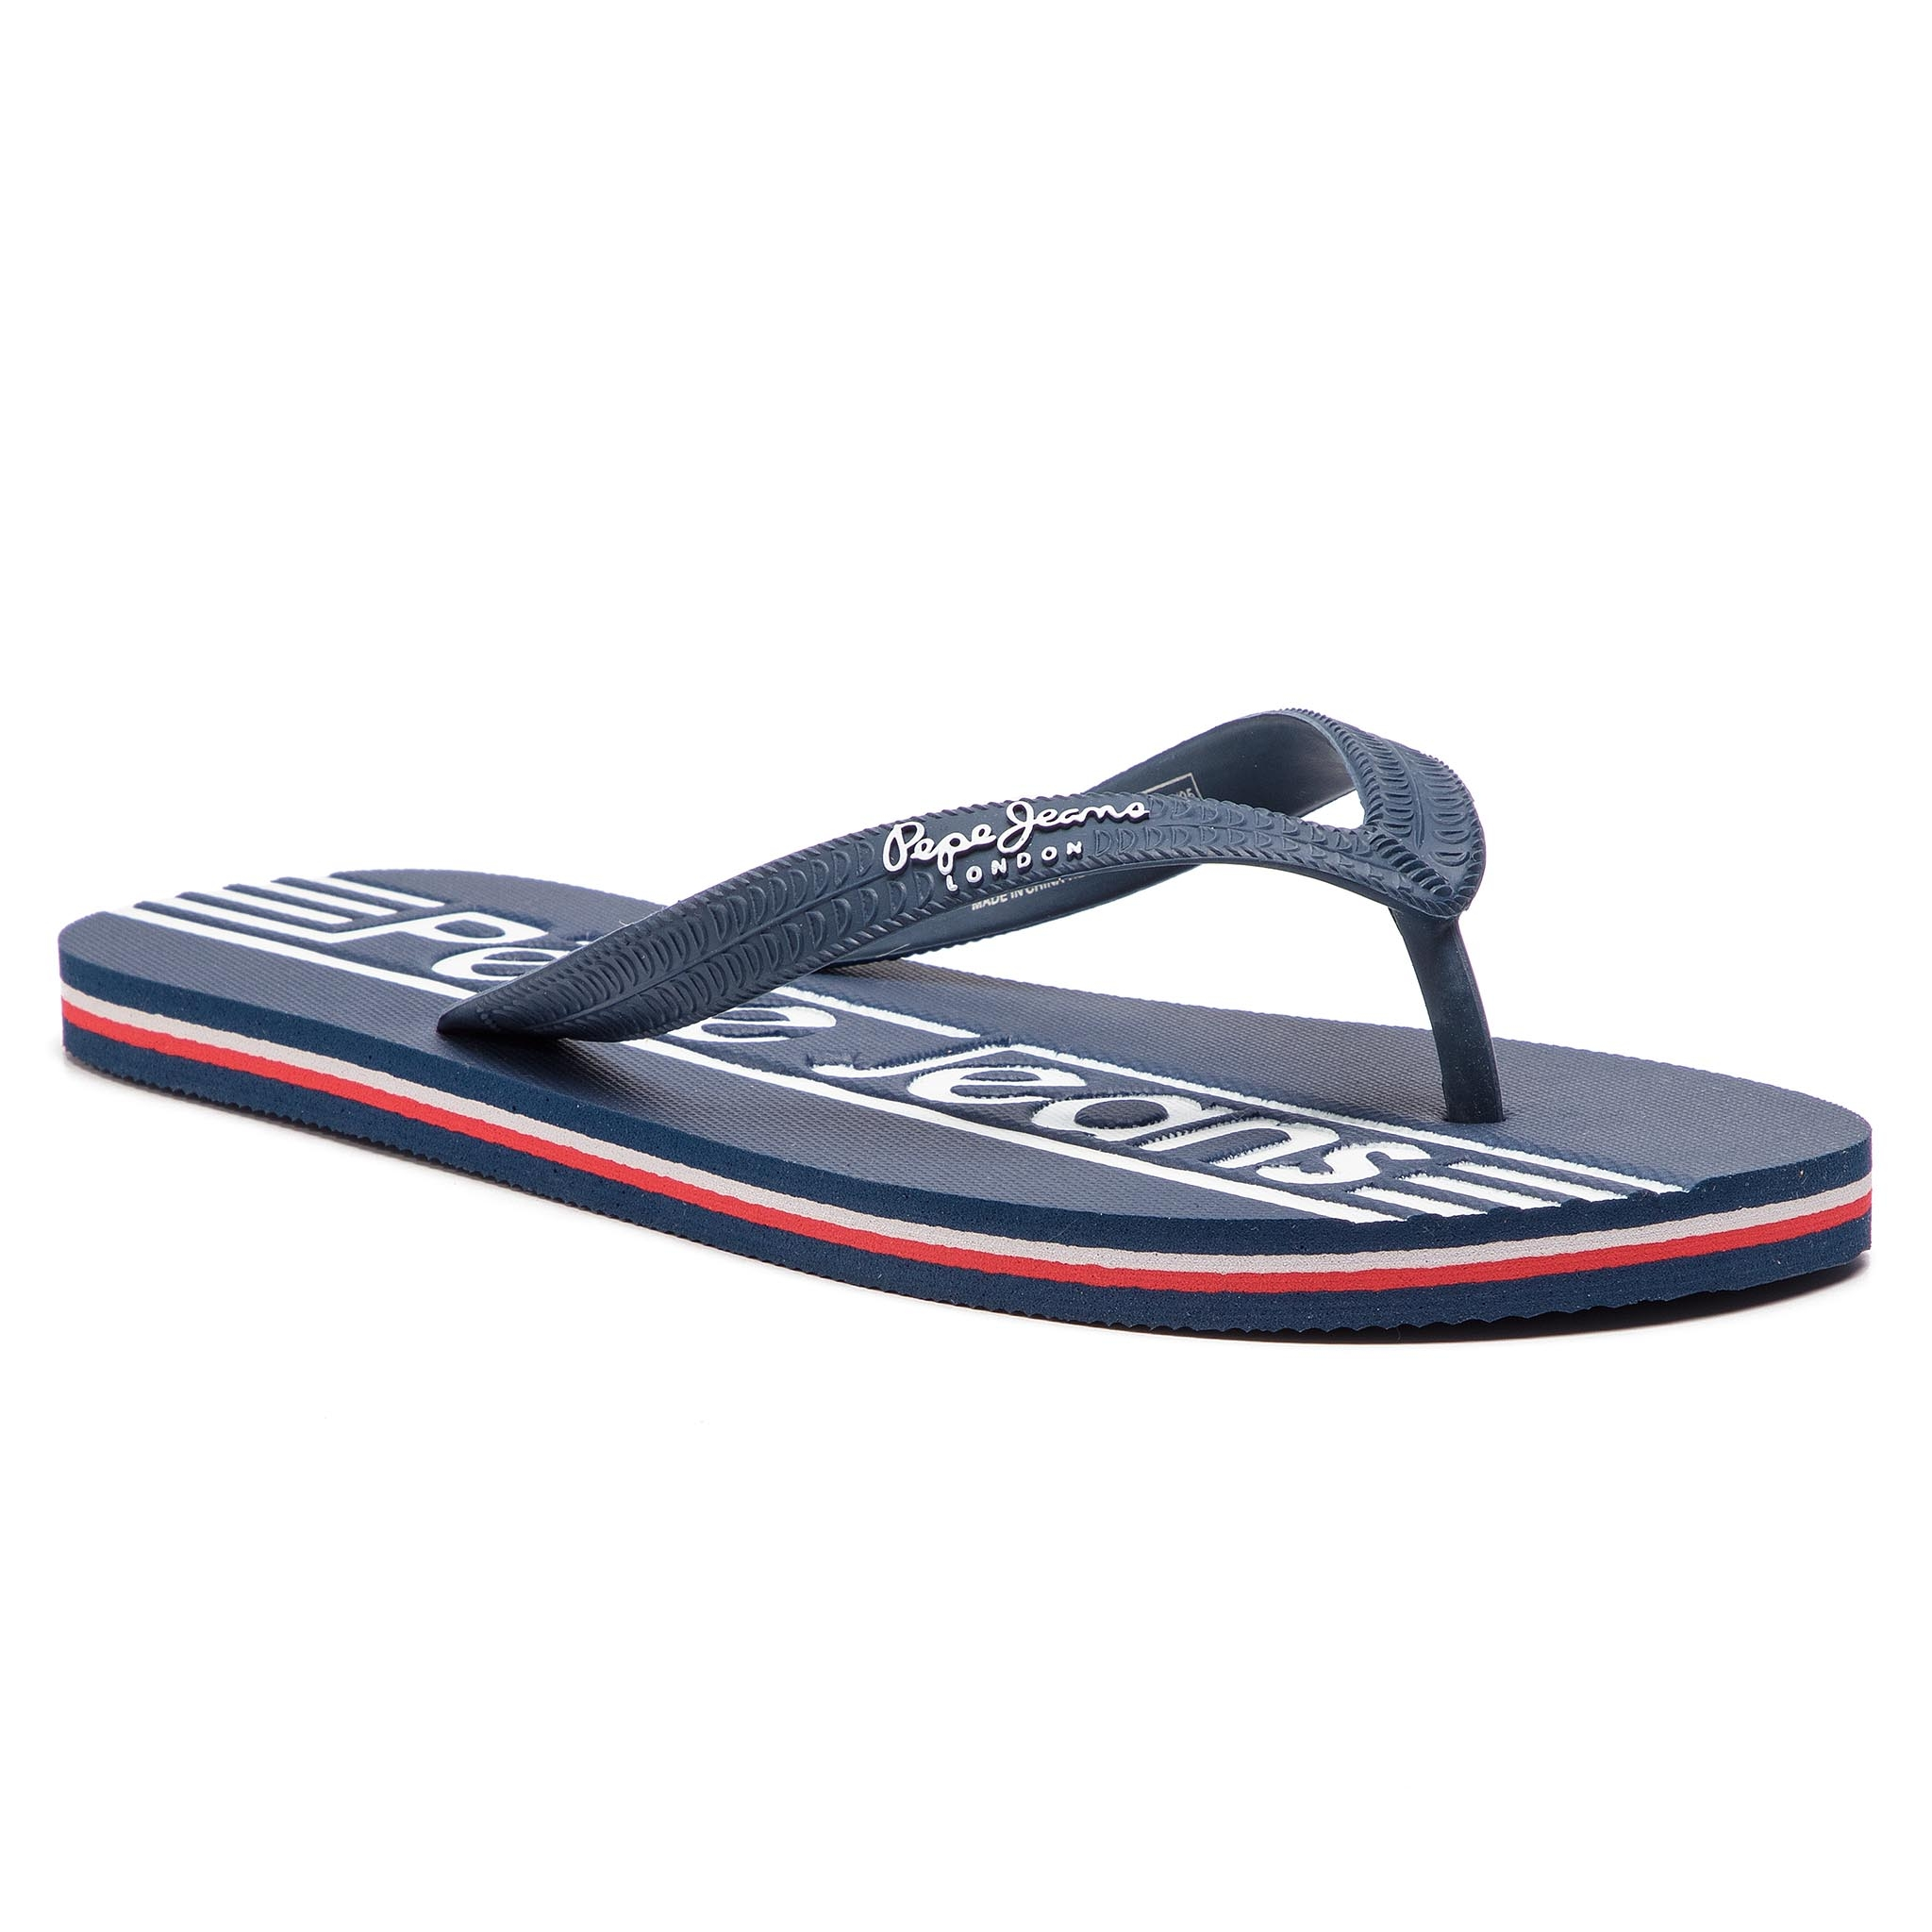 598ebe0516bf Žabky PEPE JEANS - Swimming Durham PMS70073 Navy 595 - Glami.sk